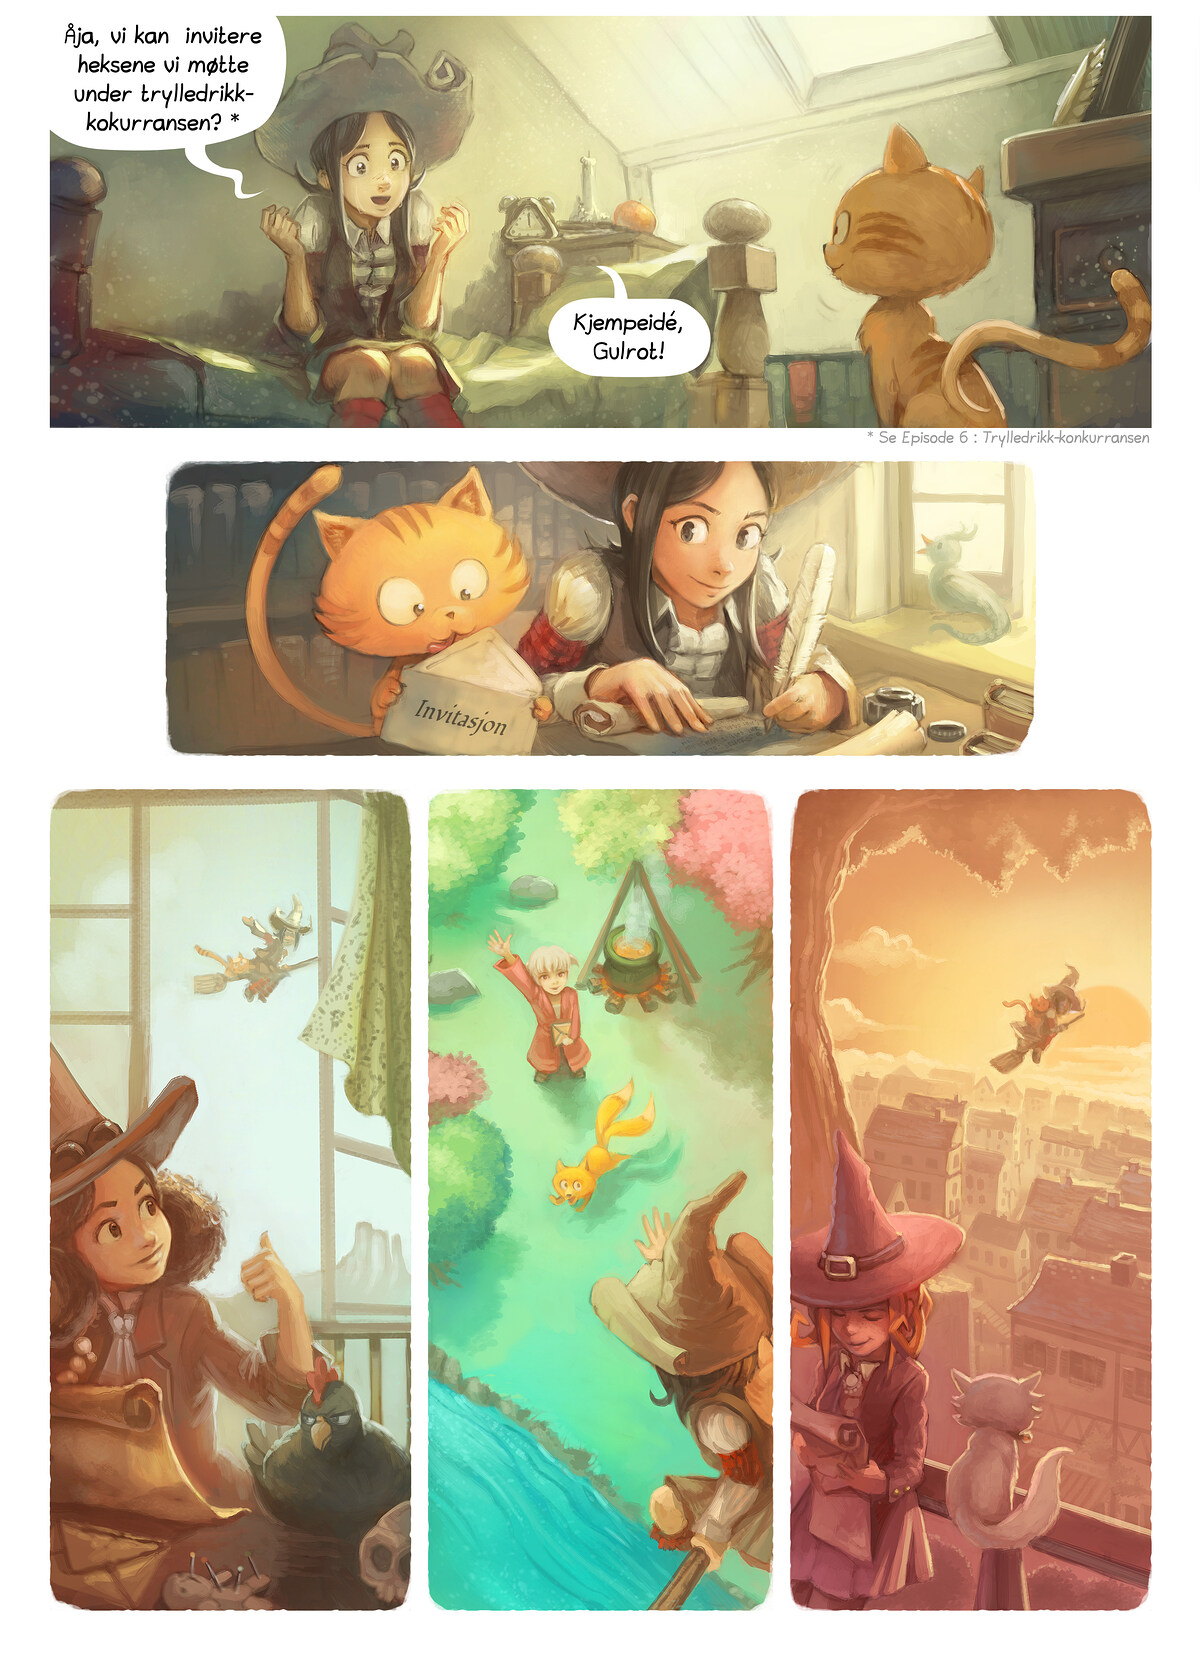 A webcomic page of Pepper&Carrot, episode 8 [no], side 2